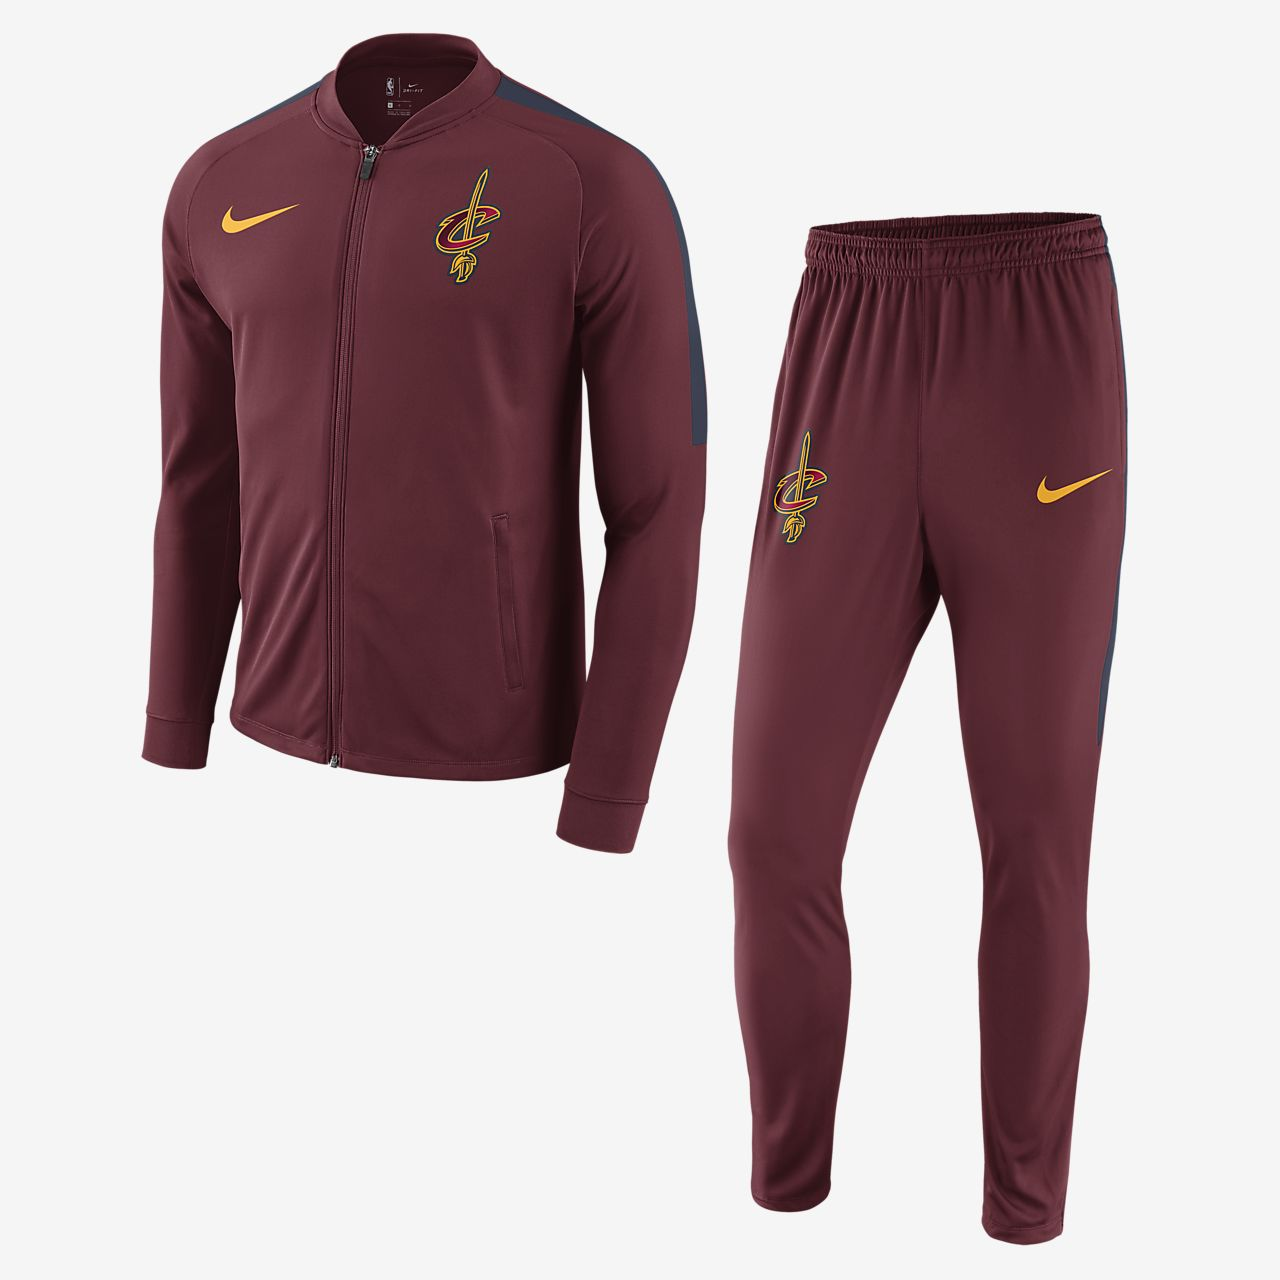 Cleveland Cavaliers Nike Dry Men's NBA Track Suit